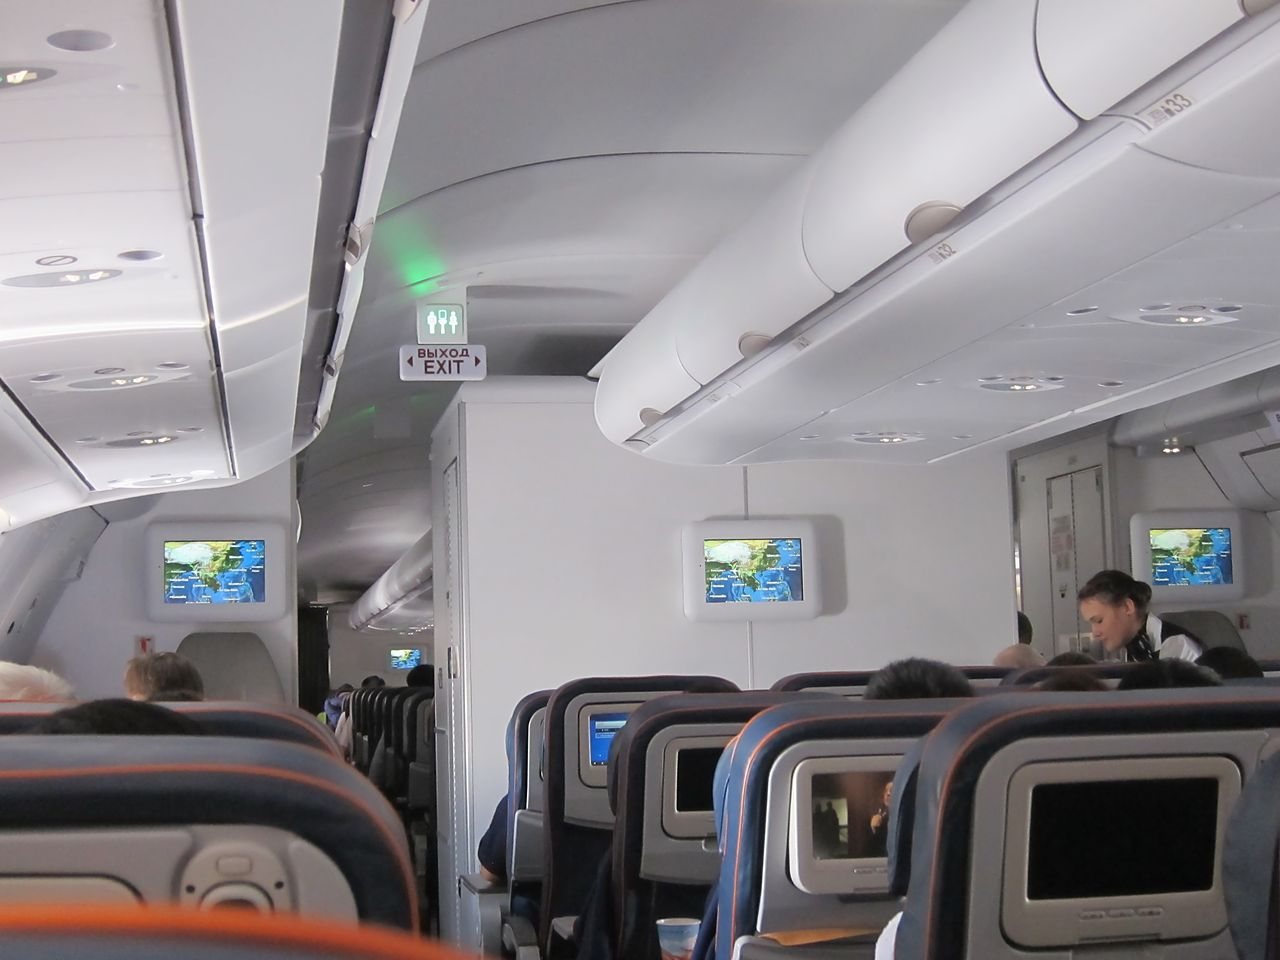 File:Cabin of Aeroflot Airbus A333, economy class.jpg ... - photo#10